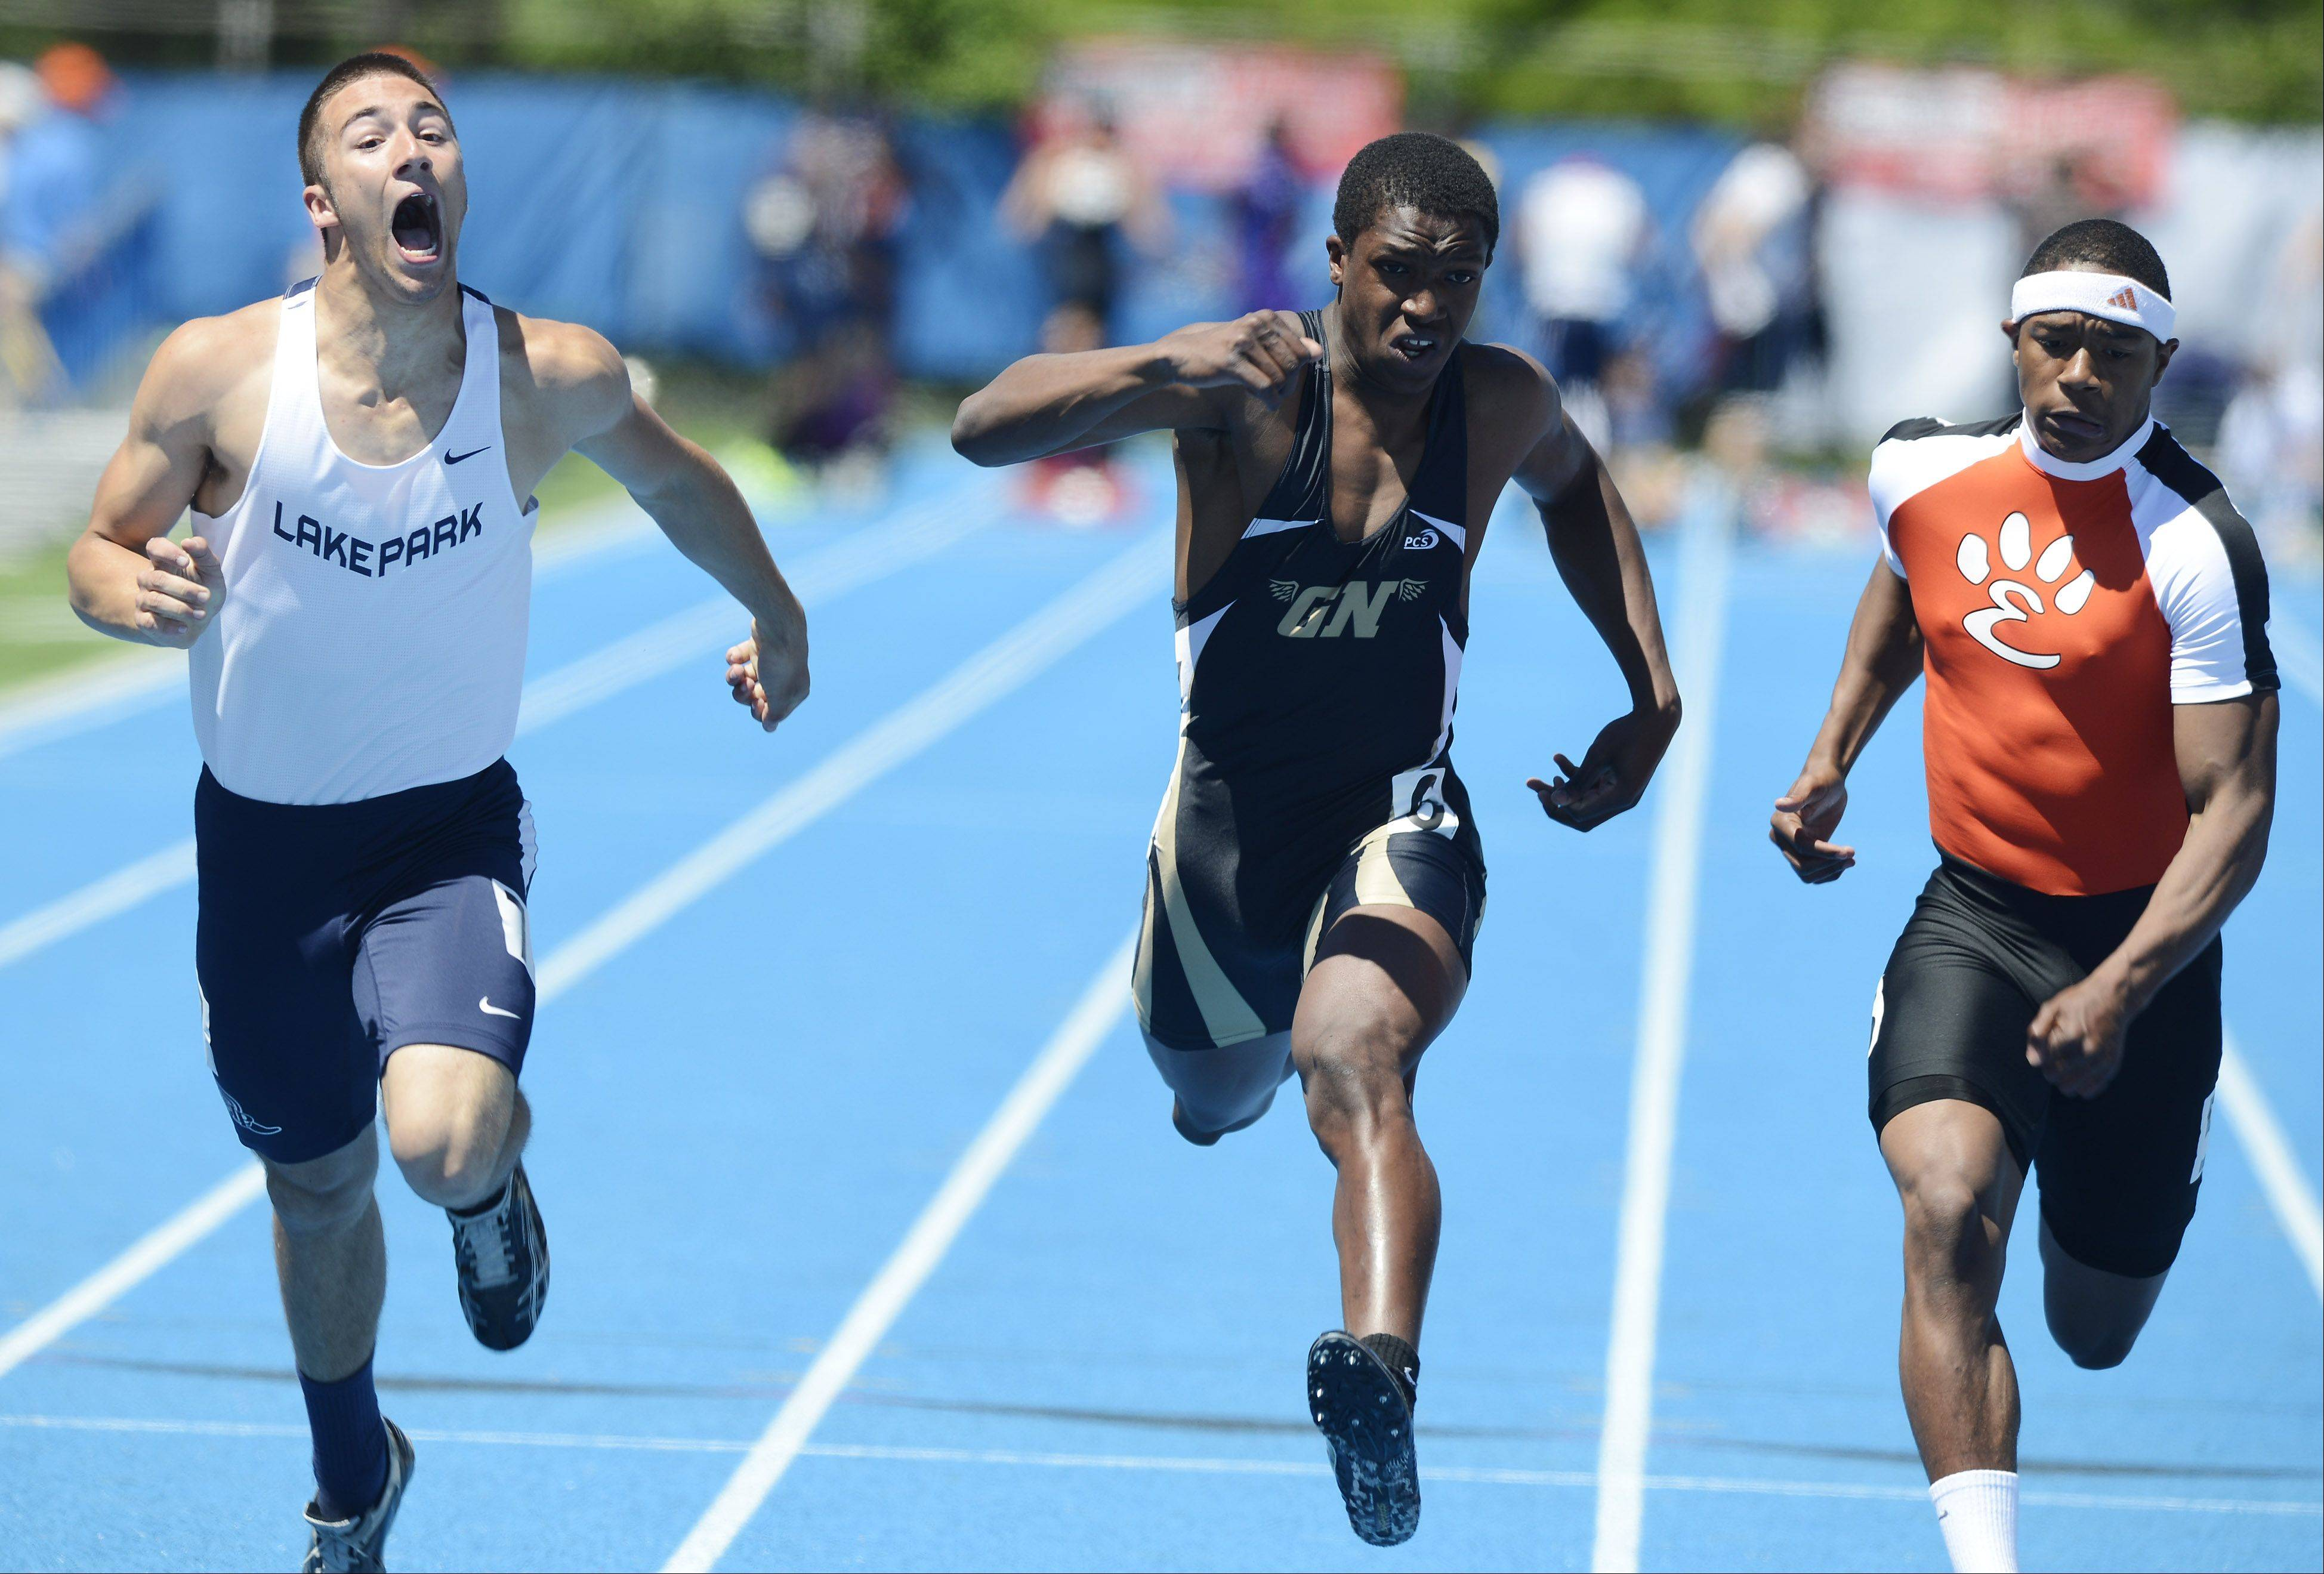 Lake Park's Scott Filip lets out a yell at the finish line while running the 100-meter dash alongside Grayslake North's Titus Booker, left, and Edwardsville's Craig James during the boys Class 3A state track preliminaries in Charleston Friday.